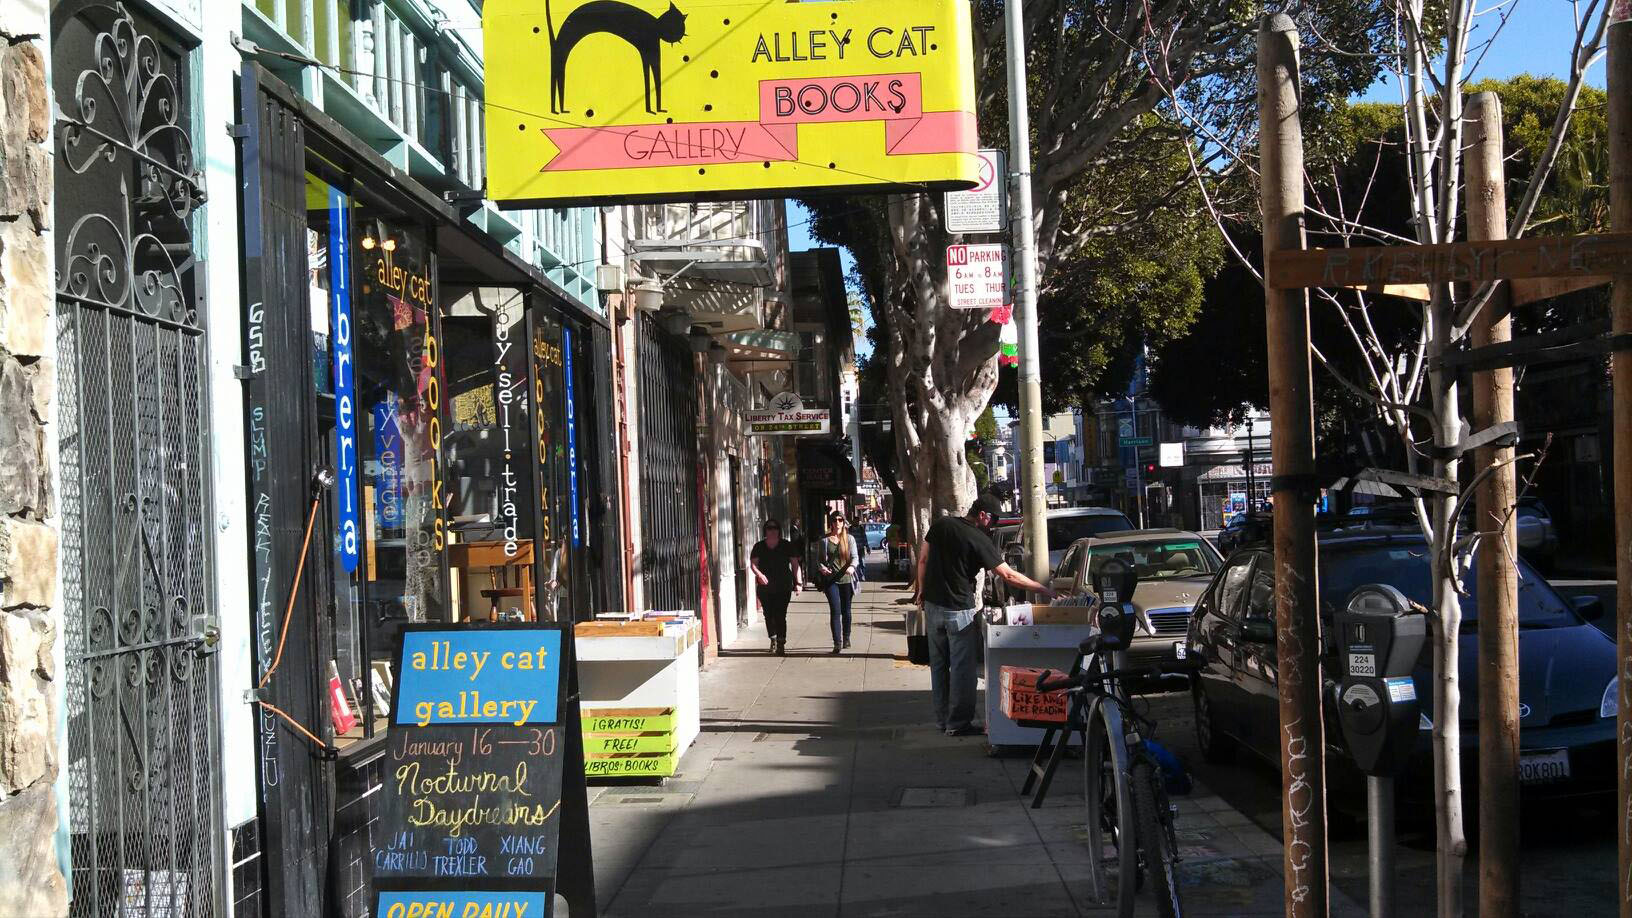 Rewriting 24th Street: Will Bookstore Alley Survive?